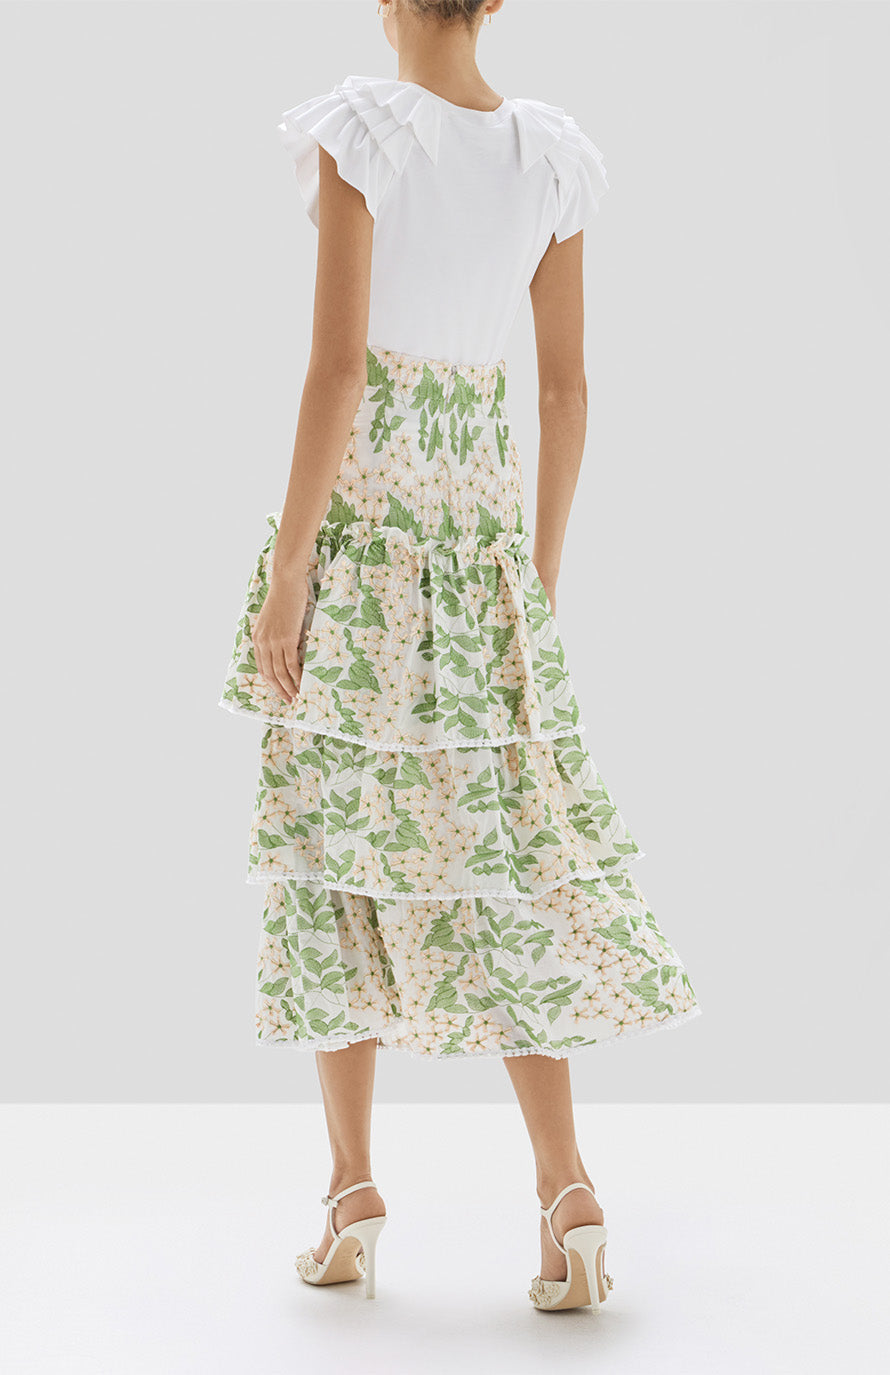 Alexis Cassis Top in White and Aditya Skirt in Green Embroidery from the Pre Spring 2020 Collection - Rear View